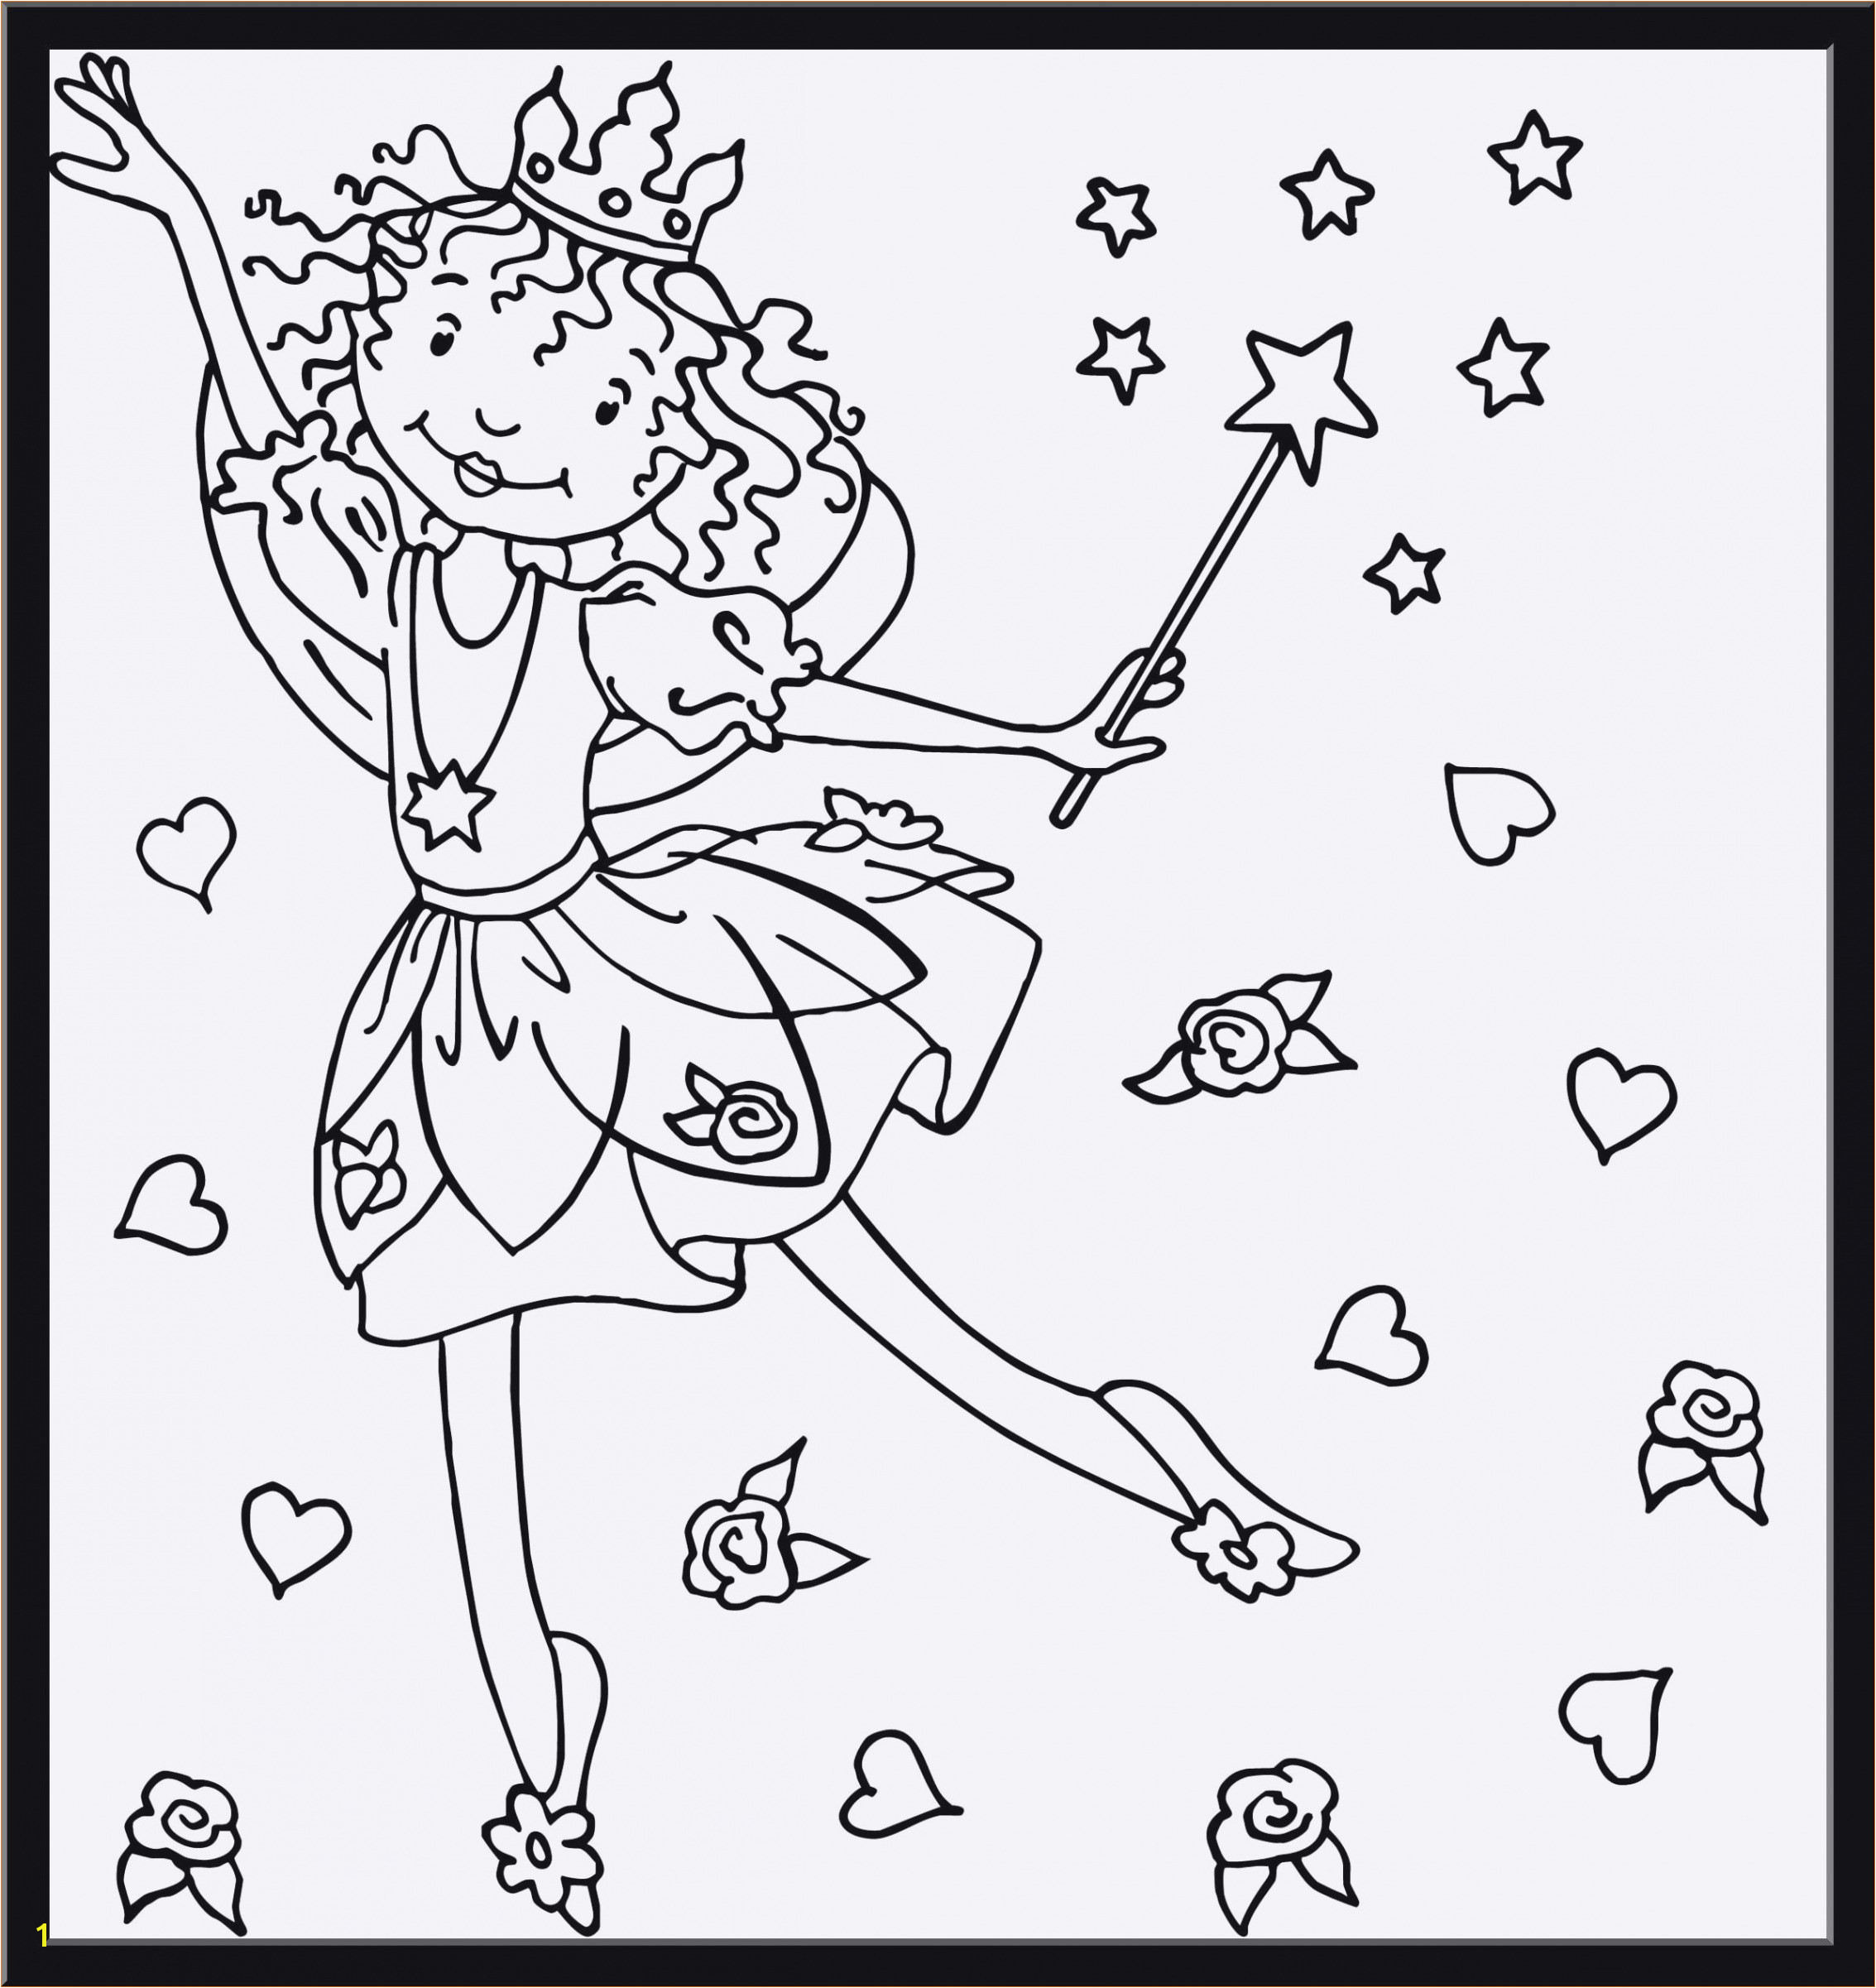 Daisy From Mario Coloring Pages Princess Daisy Coloring Page Luxus